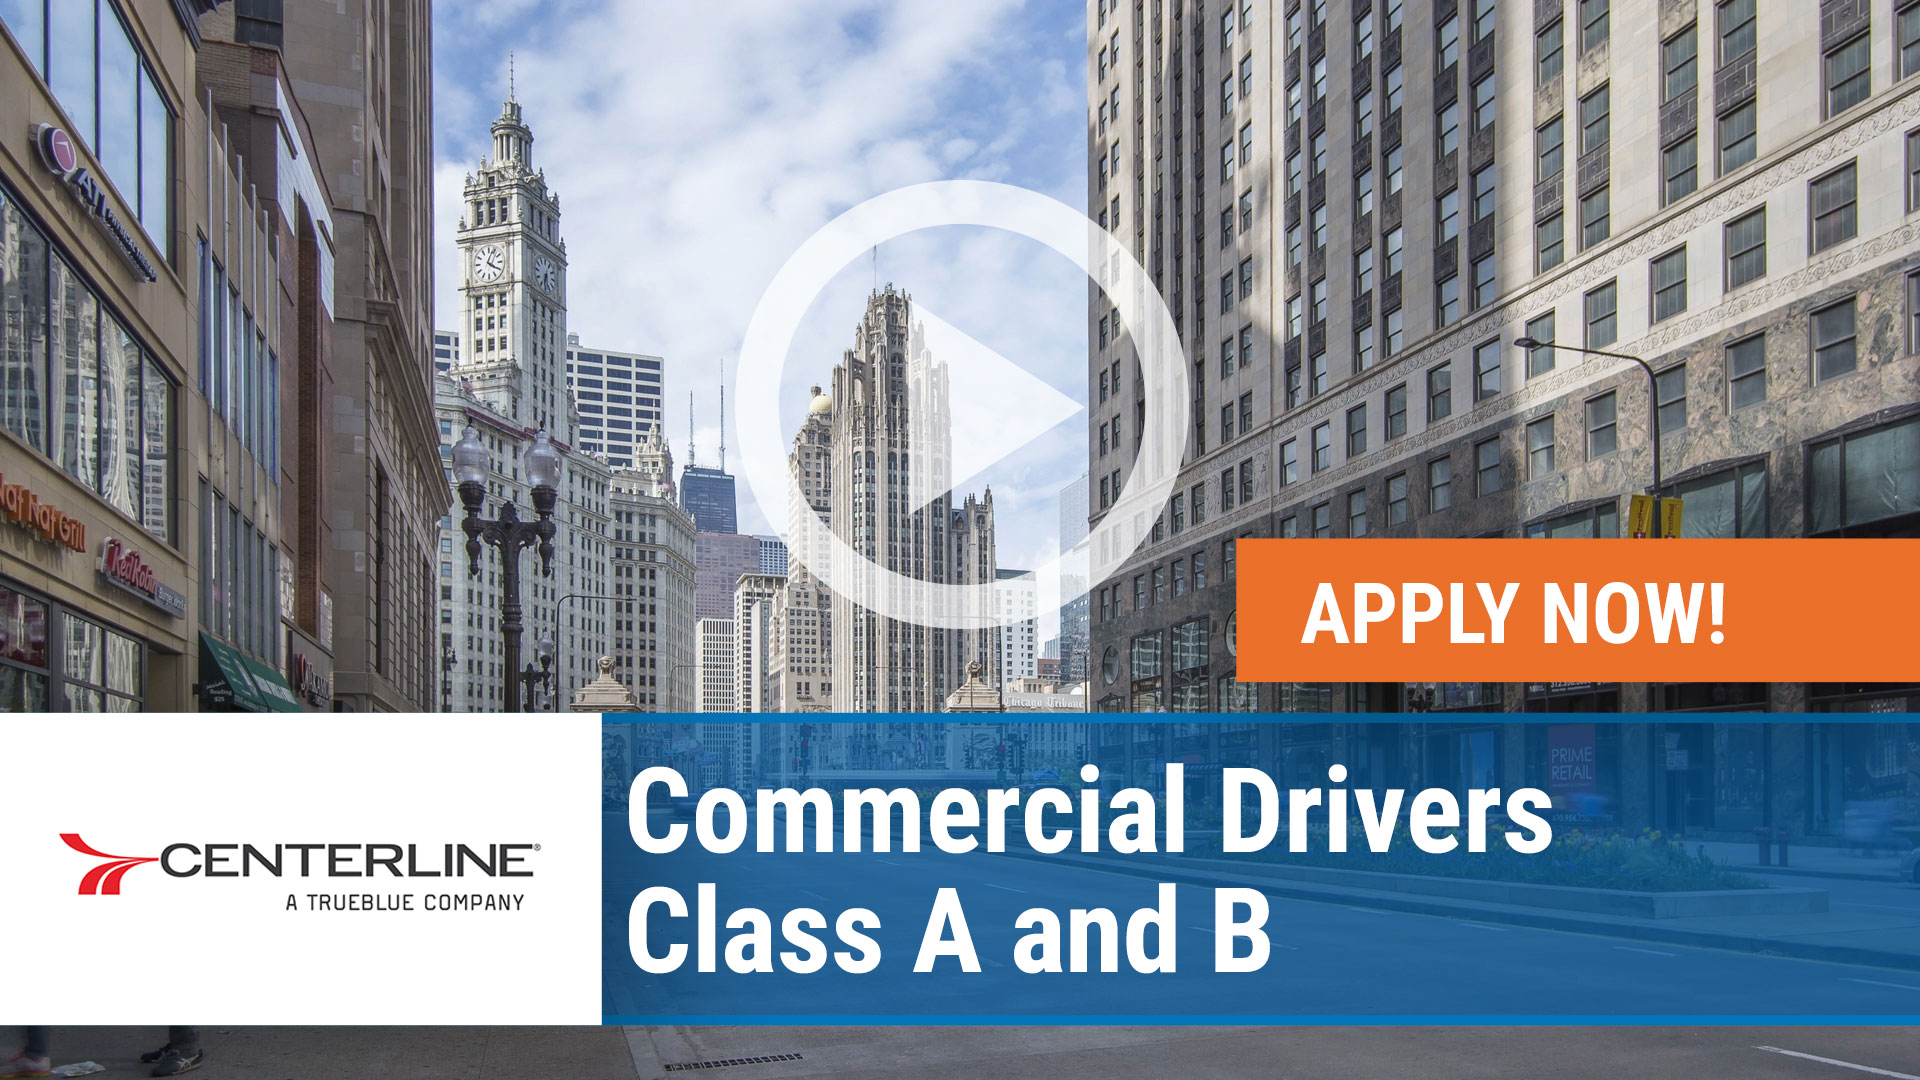 Watch our careers video for available job opening Hiring Commercial Drivers - Class A and B in Chicago, Illinois in Chicago, Illinois